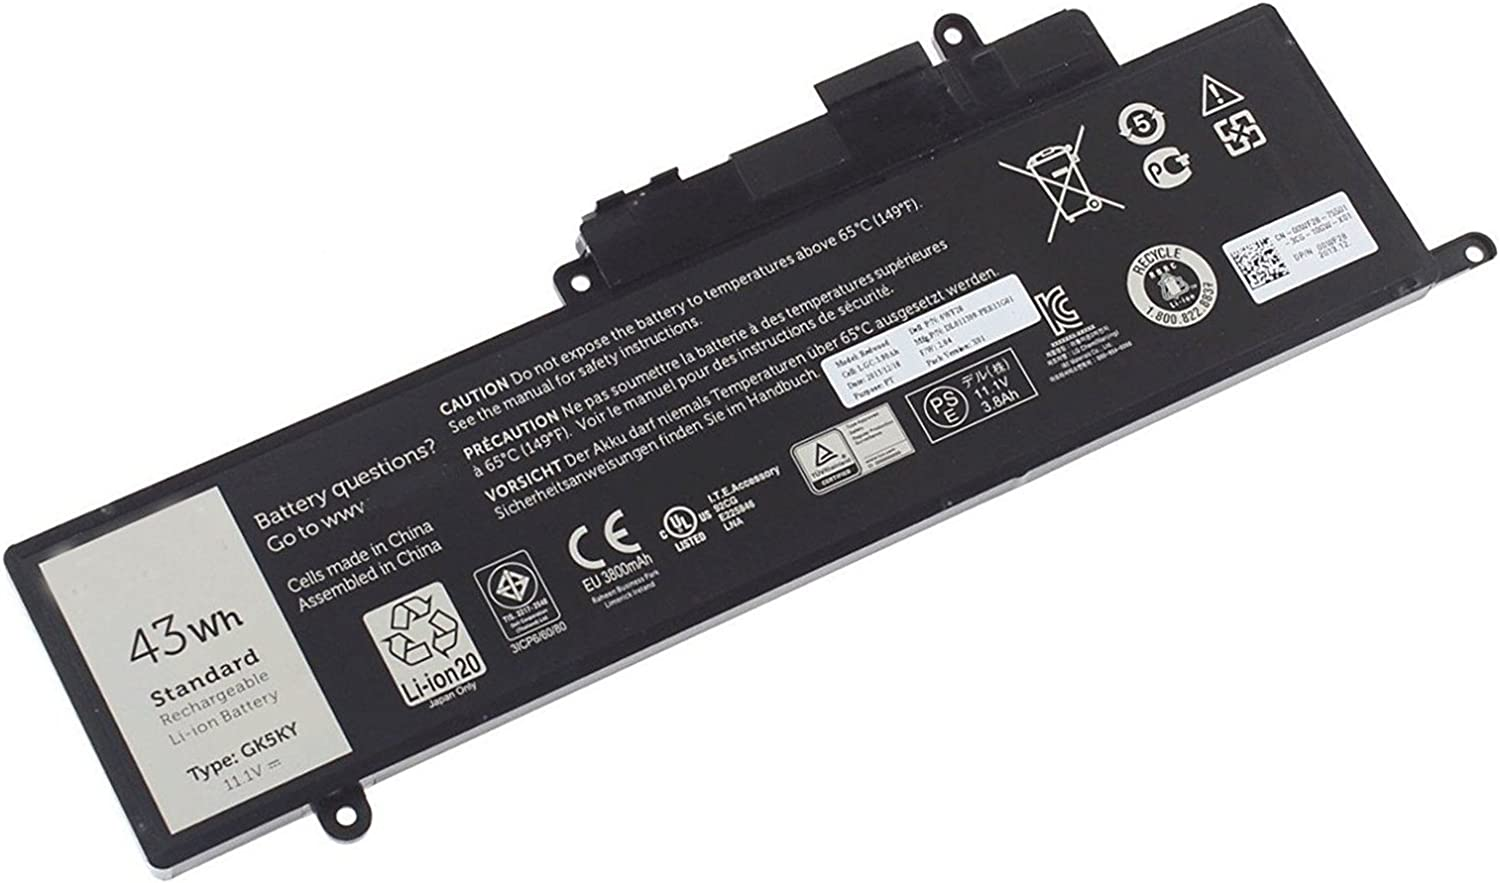 Dentsing Compatible/Replacement Laptop Battery for DELL GK5KY (11.1V 43Wh) Inspiron 13 7347 13-7352 3147 3000 11-3152 Series 04K8YH 92NCT 092NCT 4K8YH P20T